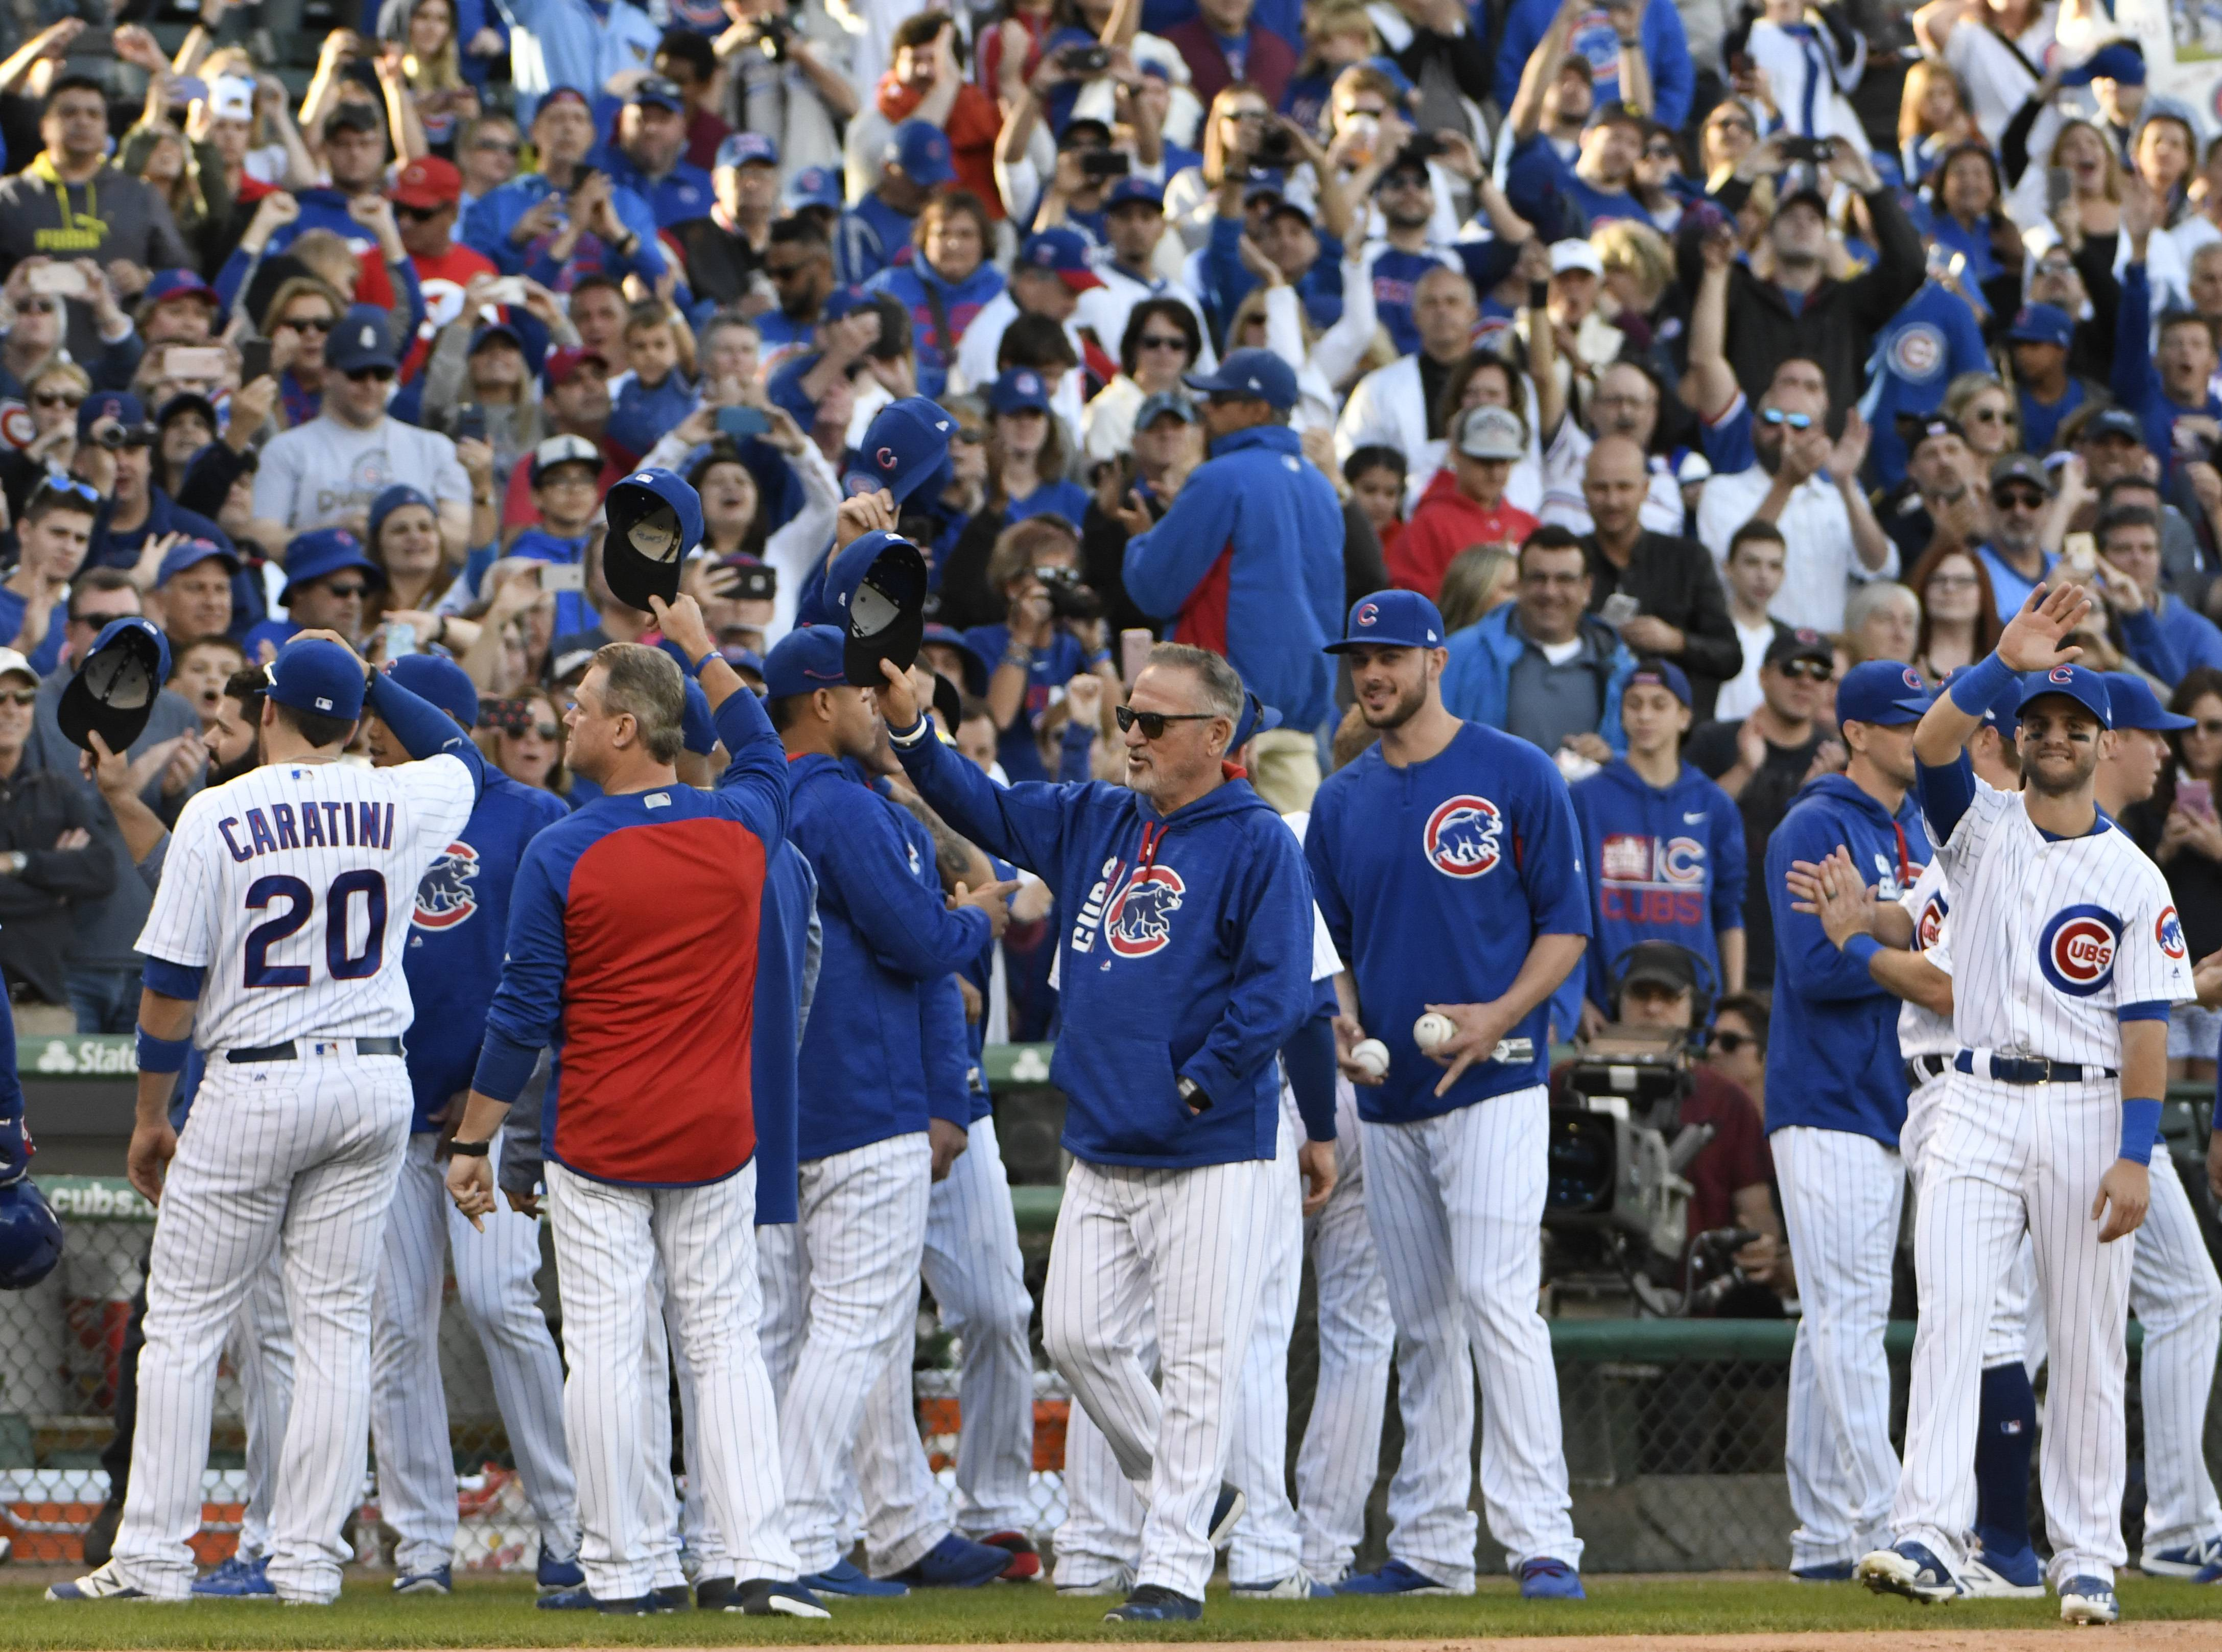 Season over, Chicago Cubs look forward to playoffs